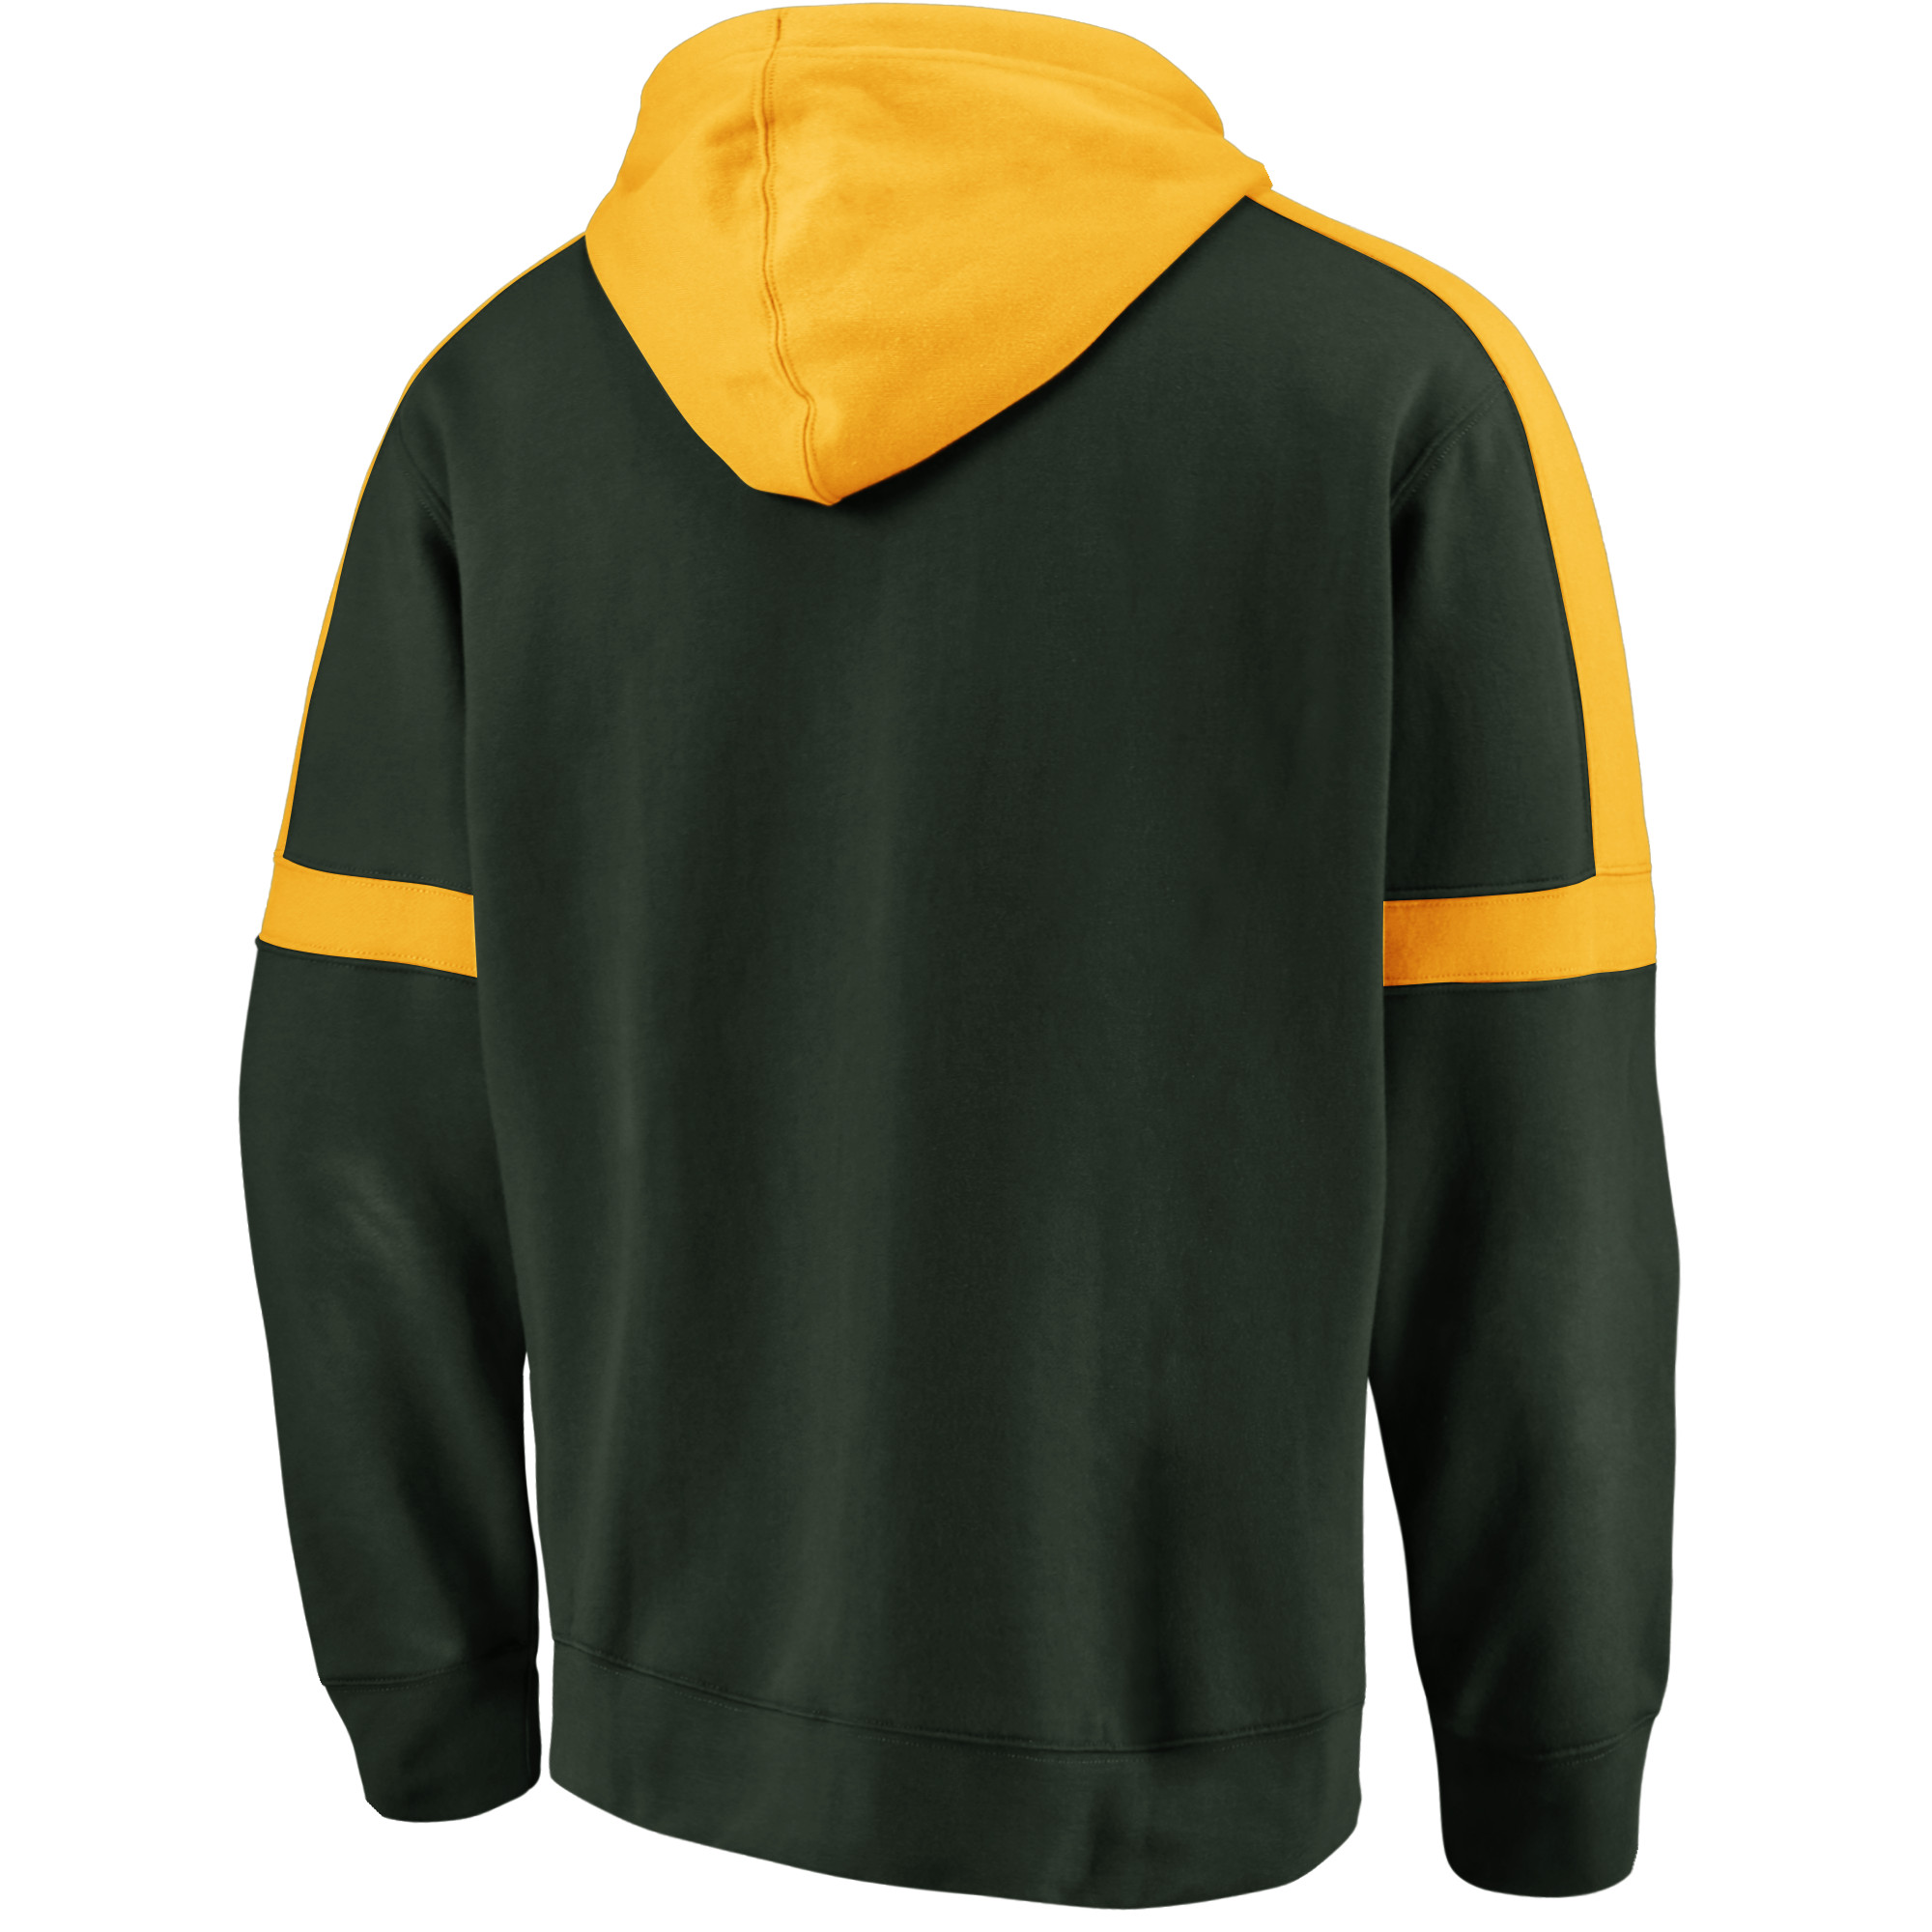 new concept ba9b8 72b1e Green Bay Packers NFL Pro Line by Fanatics Branded Big   Tall Iconic Full- Zip Hoodie - Green Gold - Walmart.com